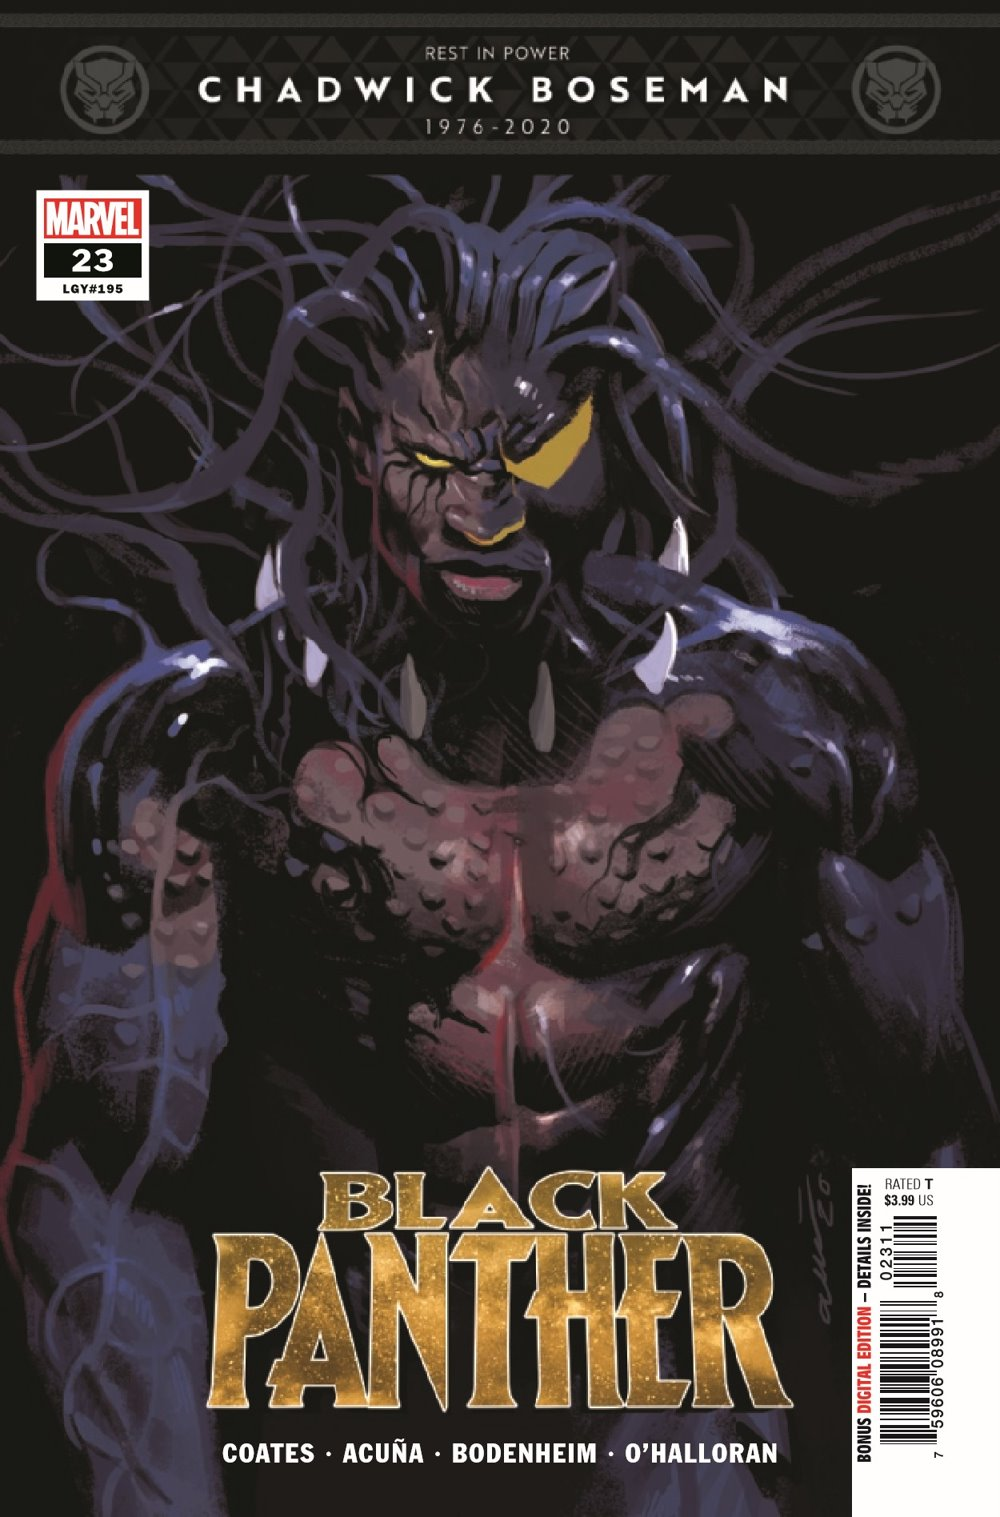 BLAP2018023_Preview-1 ComicList Previews: BLACK PANTHER #23